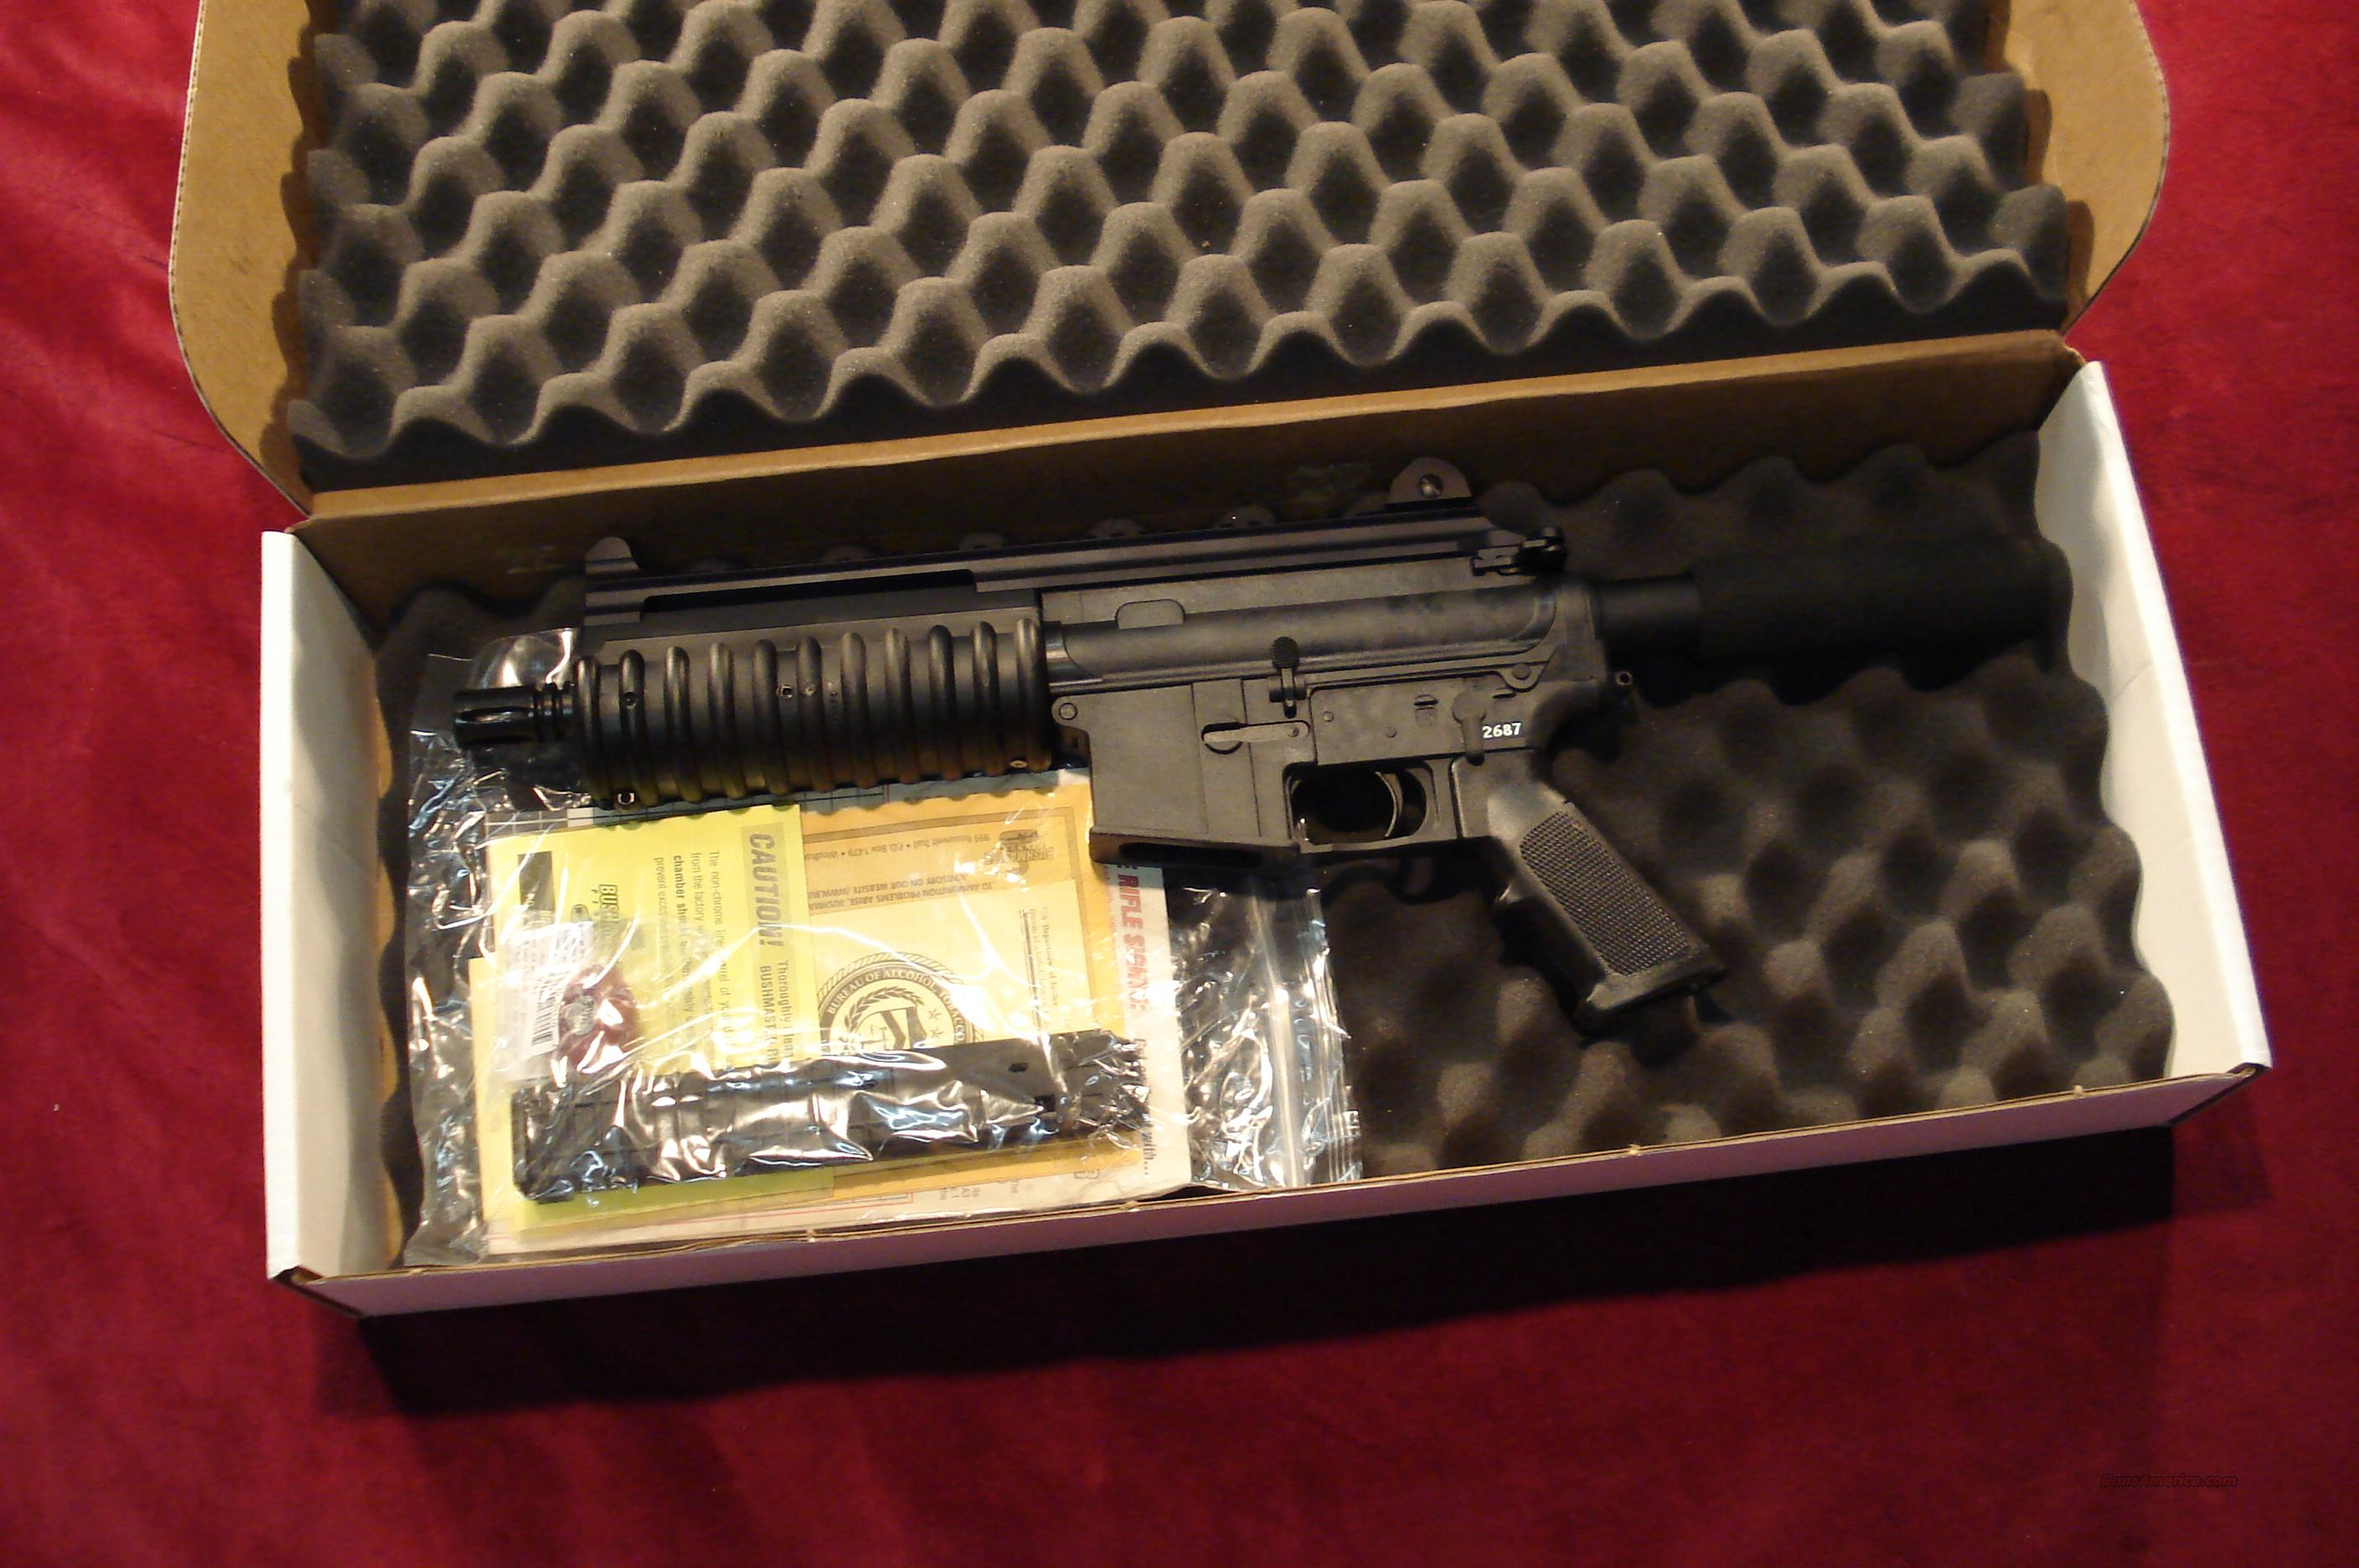 BUSHMASTER CARBON 15 9MM PISTOL NEW IN THE BOX  Guns > Pistols > Bushmaster Pistols